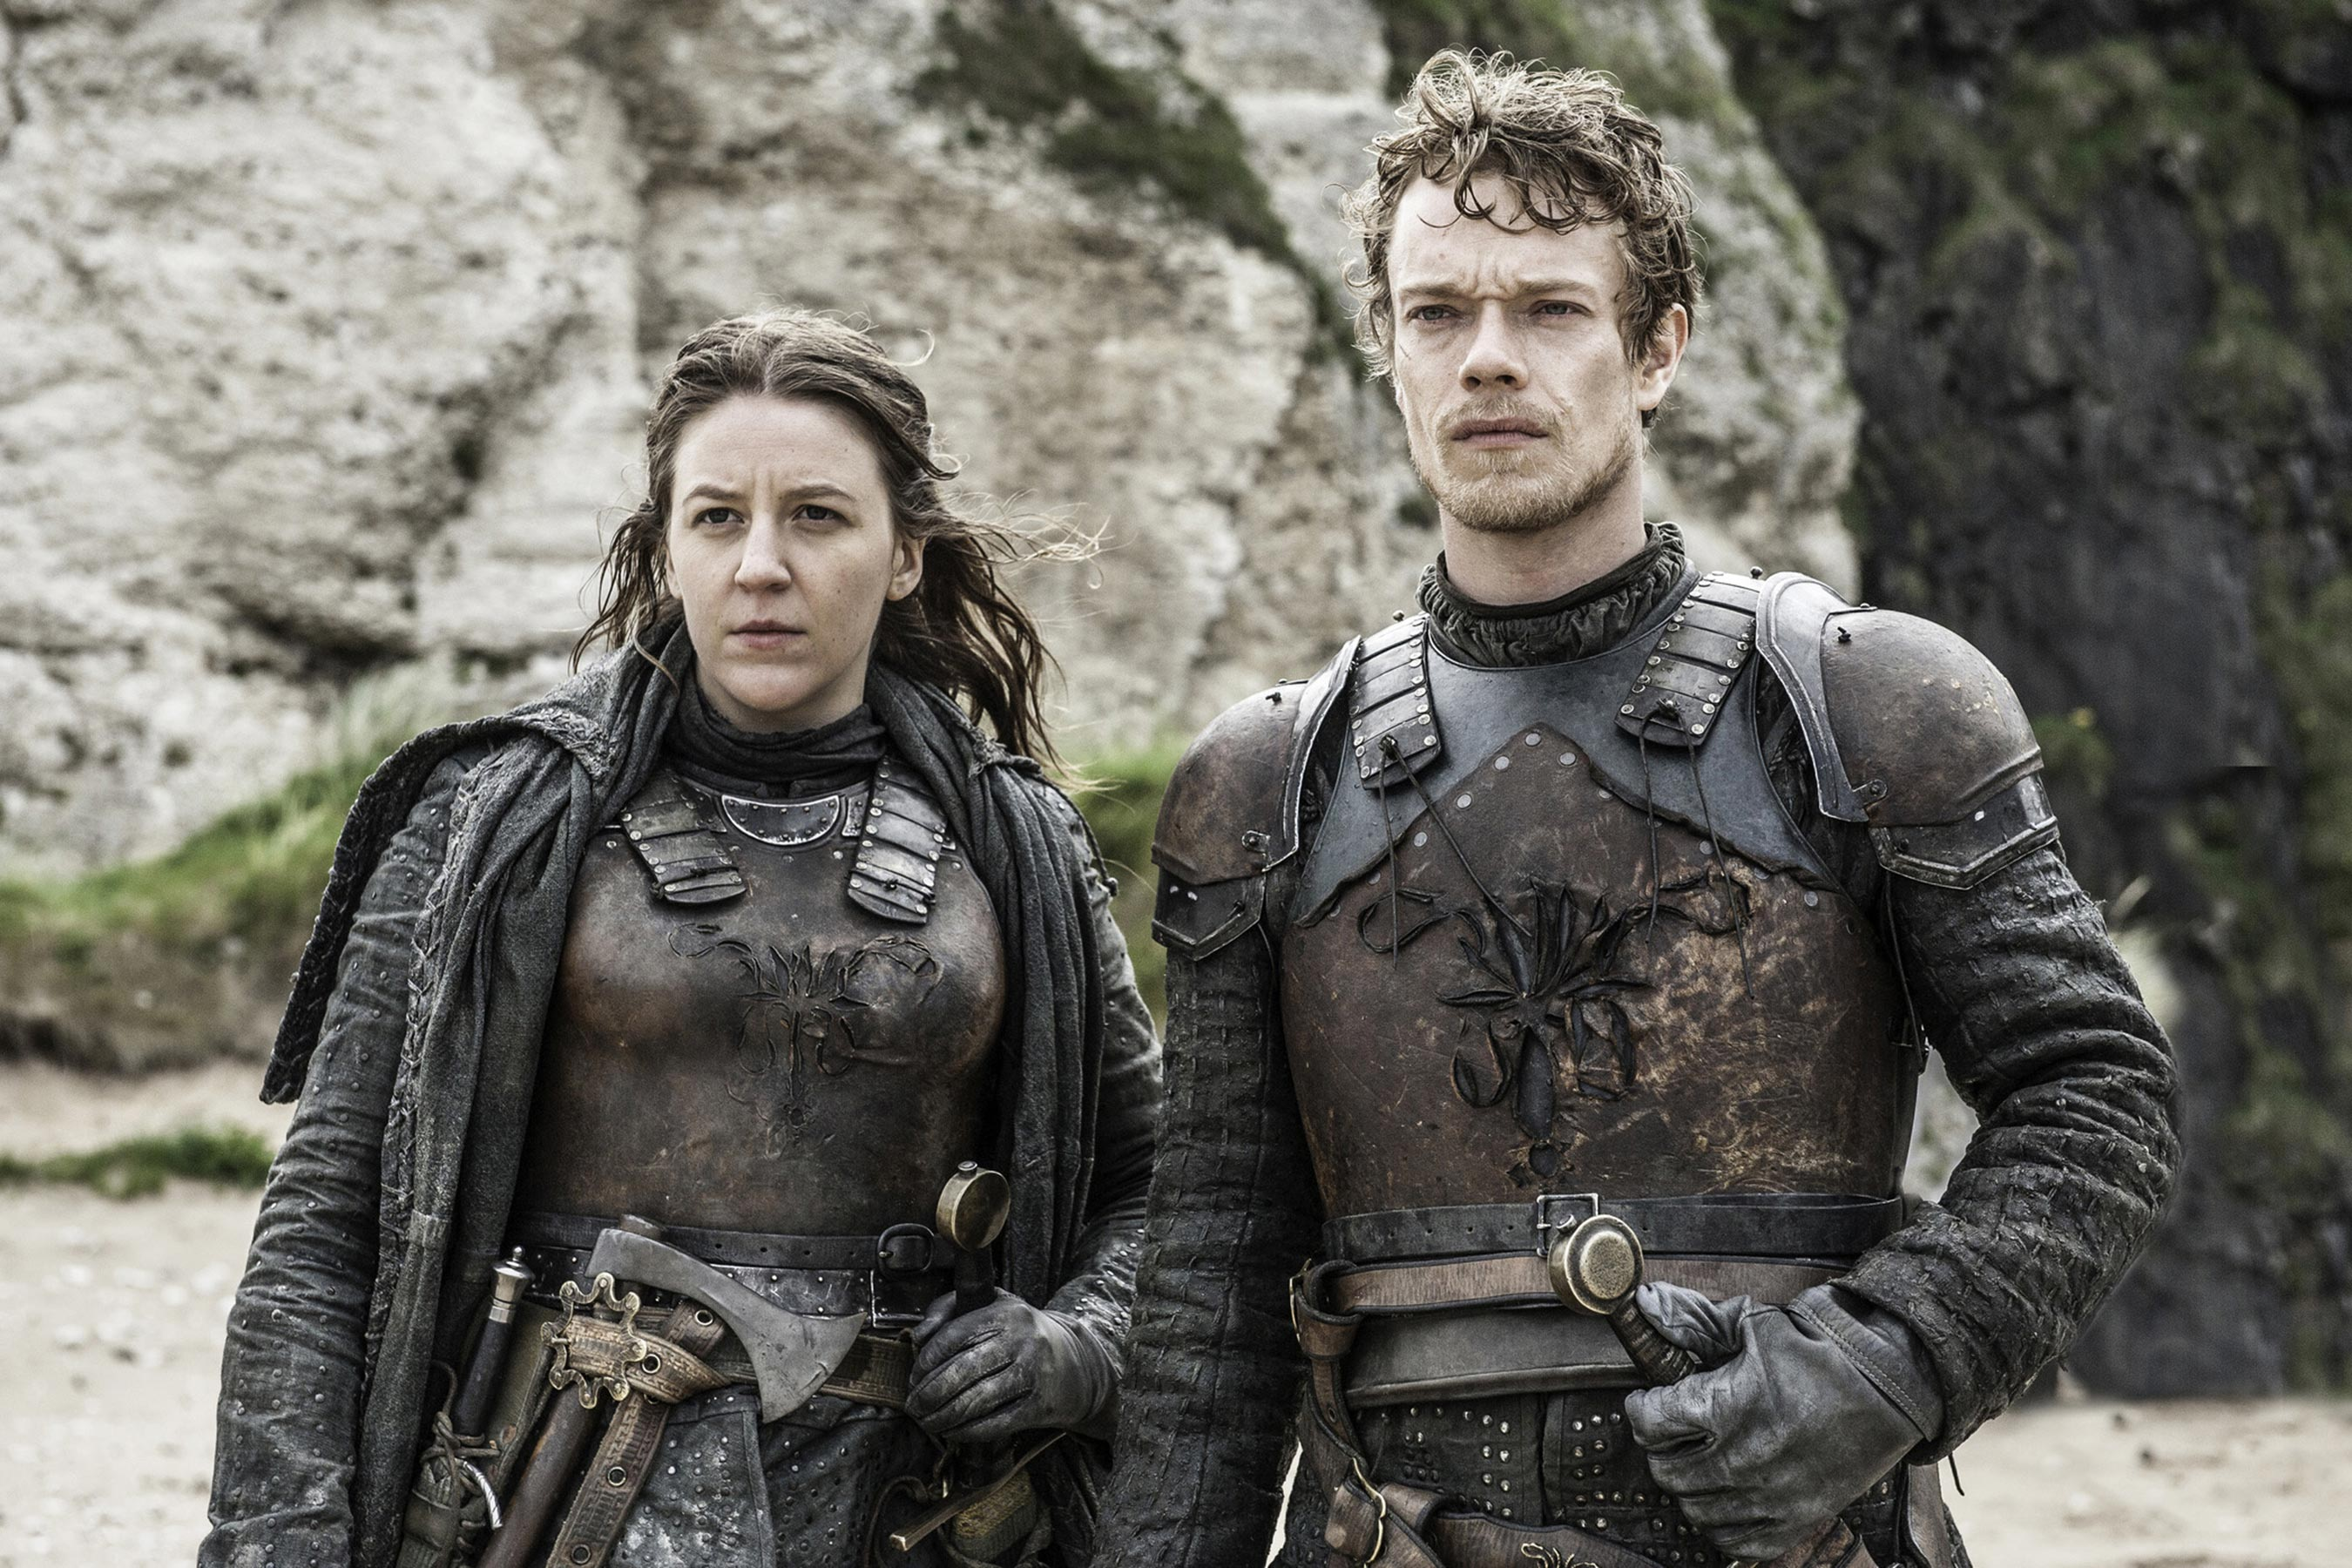 Game of Thrones was 2018's top on-demand show despite not airing